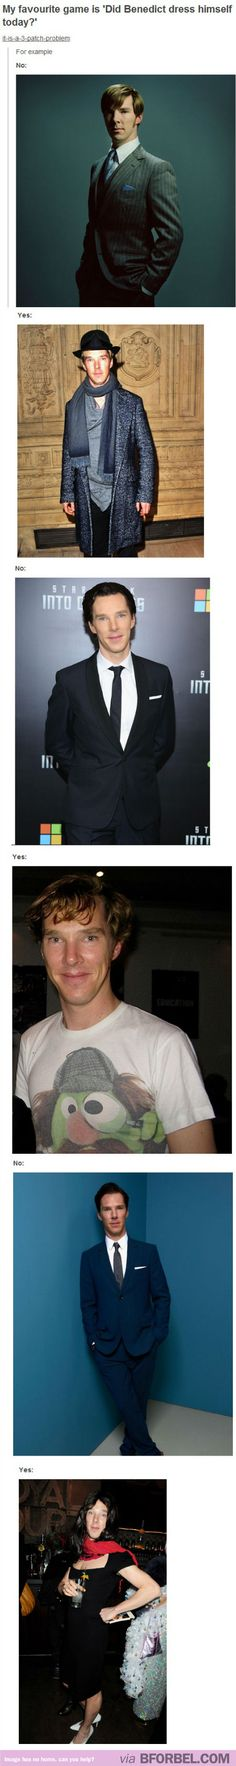 How To Know If Benedict Cumberbatch Dressed Himself Today… but its cute when he dresses himself :)